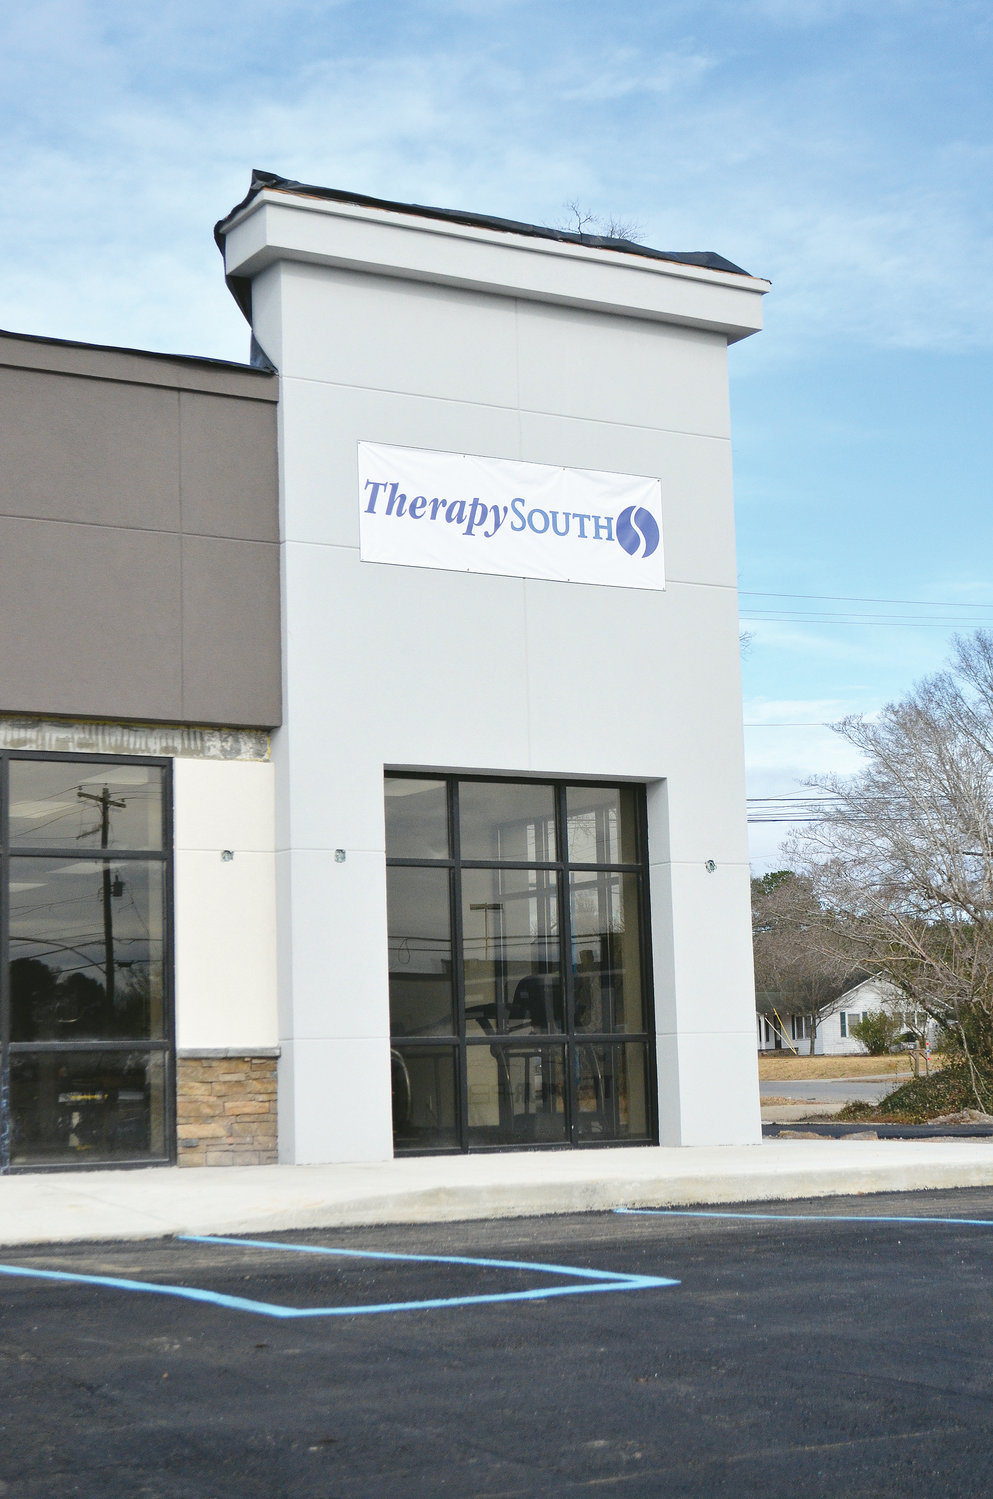 TherapySouth is one of three or four businesses that will locate in the old Solid Image Fitness building along Airport Road in Jasper.